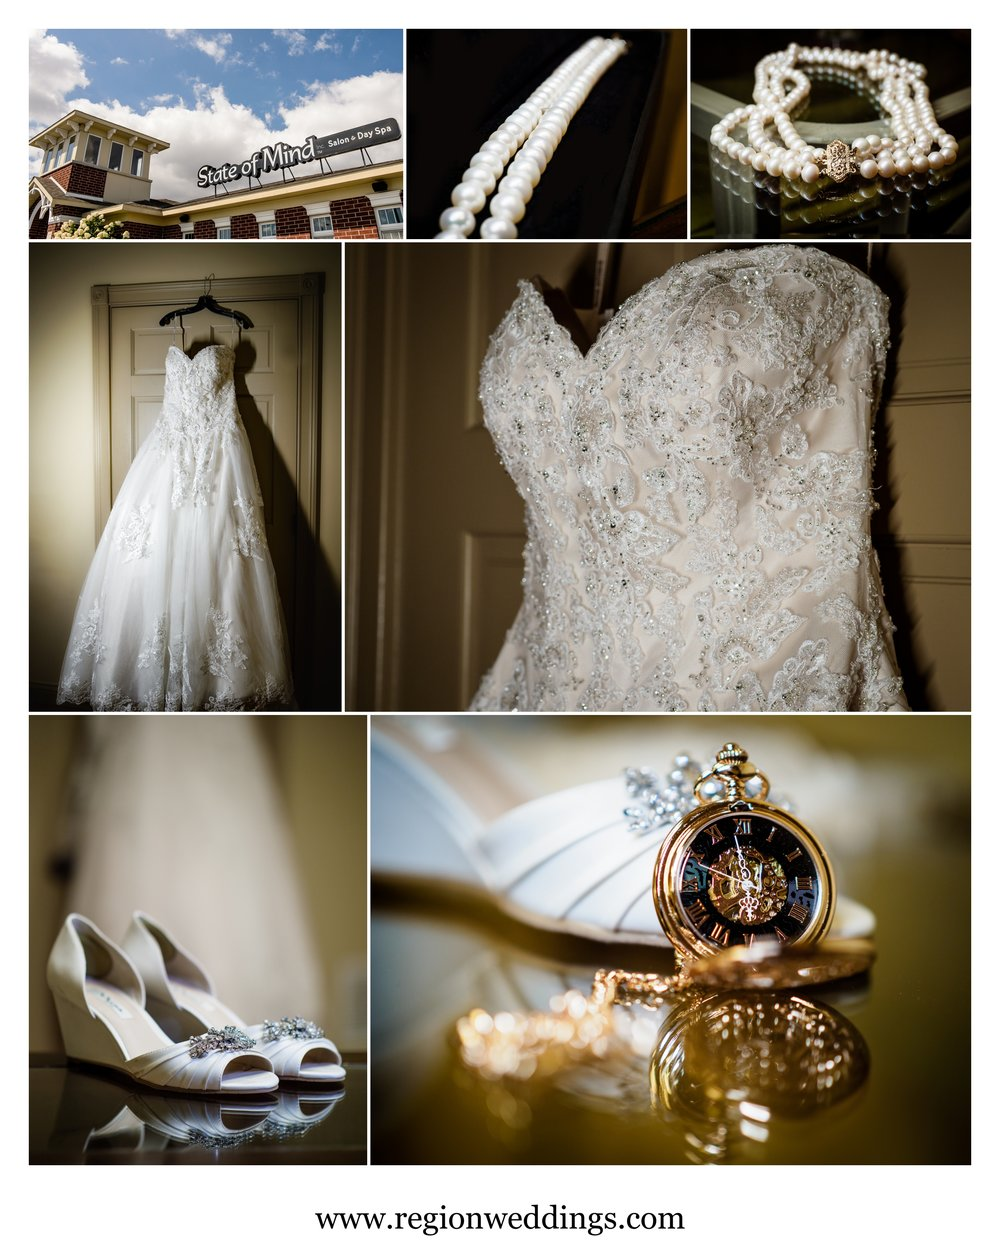 Vintage glamour wedding day accessories.